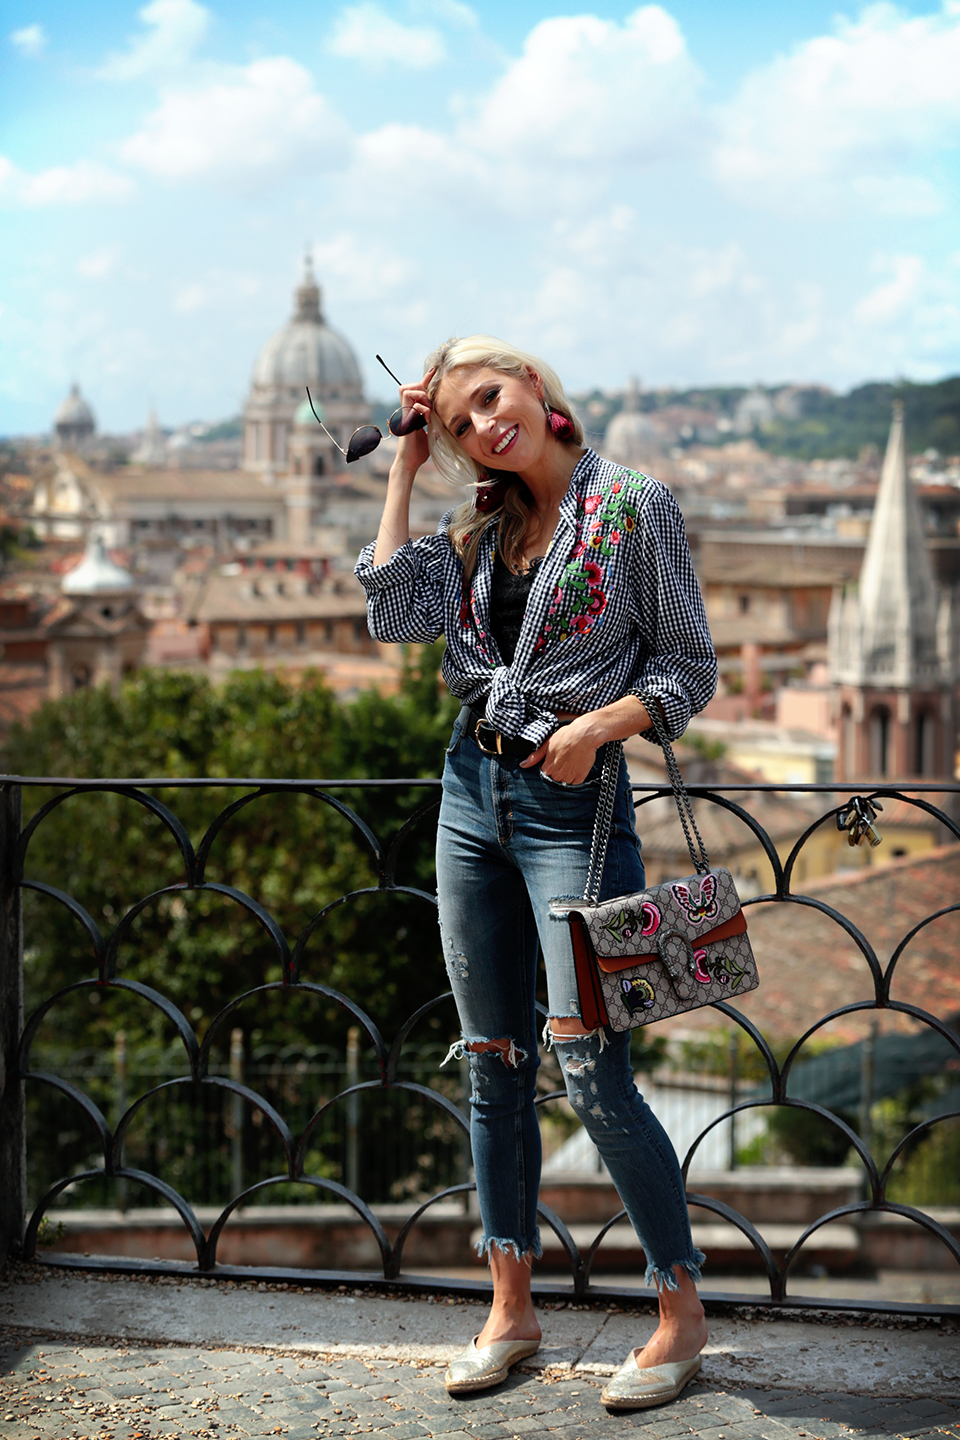 rome-italy-travel-blogger-amanda-custo-best-bloggers-johannesburg-south-africa-best-places-in-rome-003.jpg